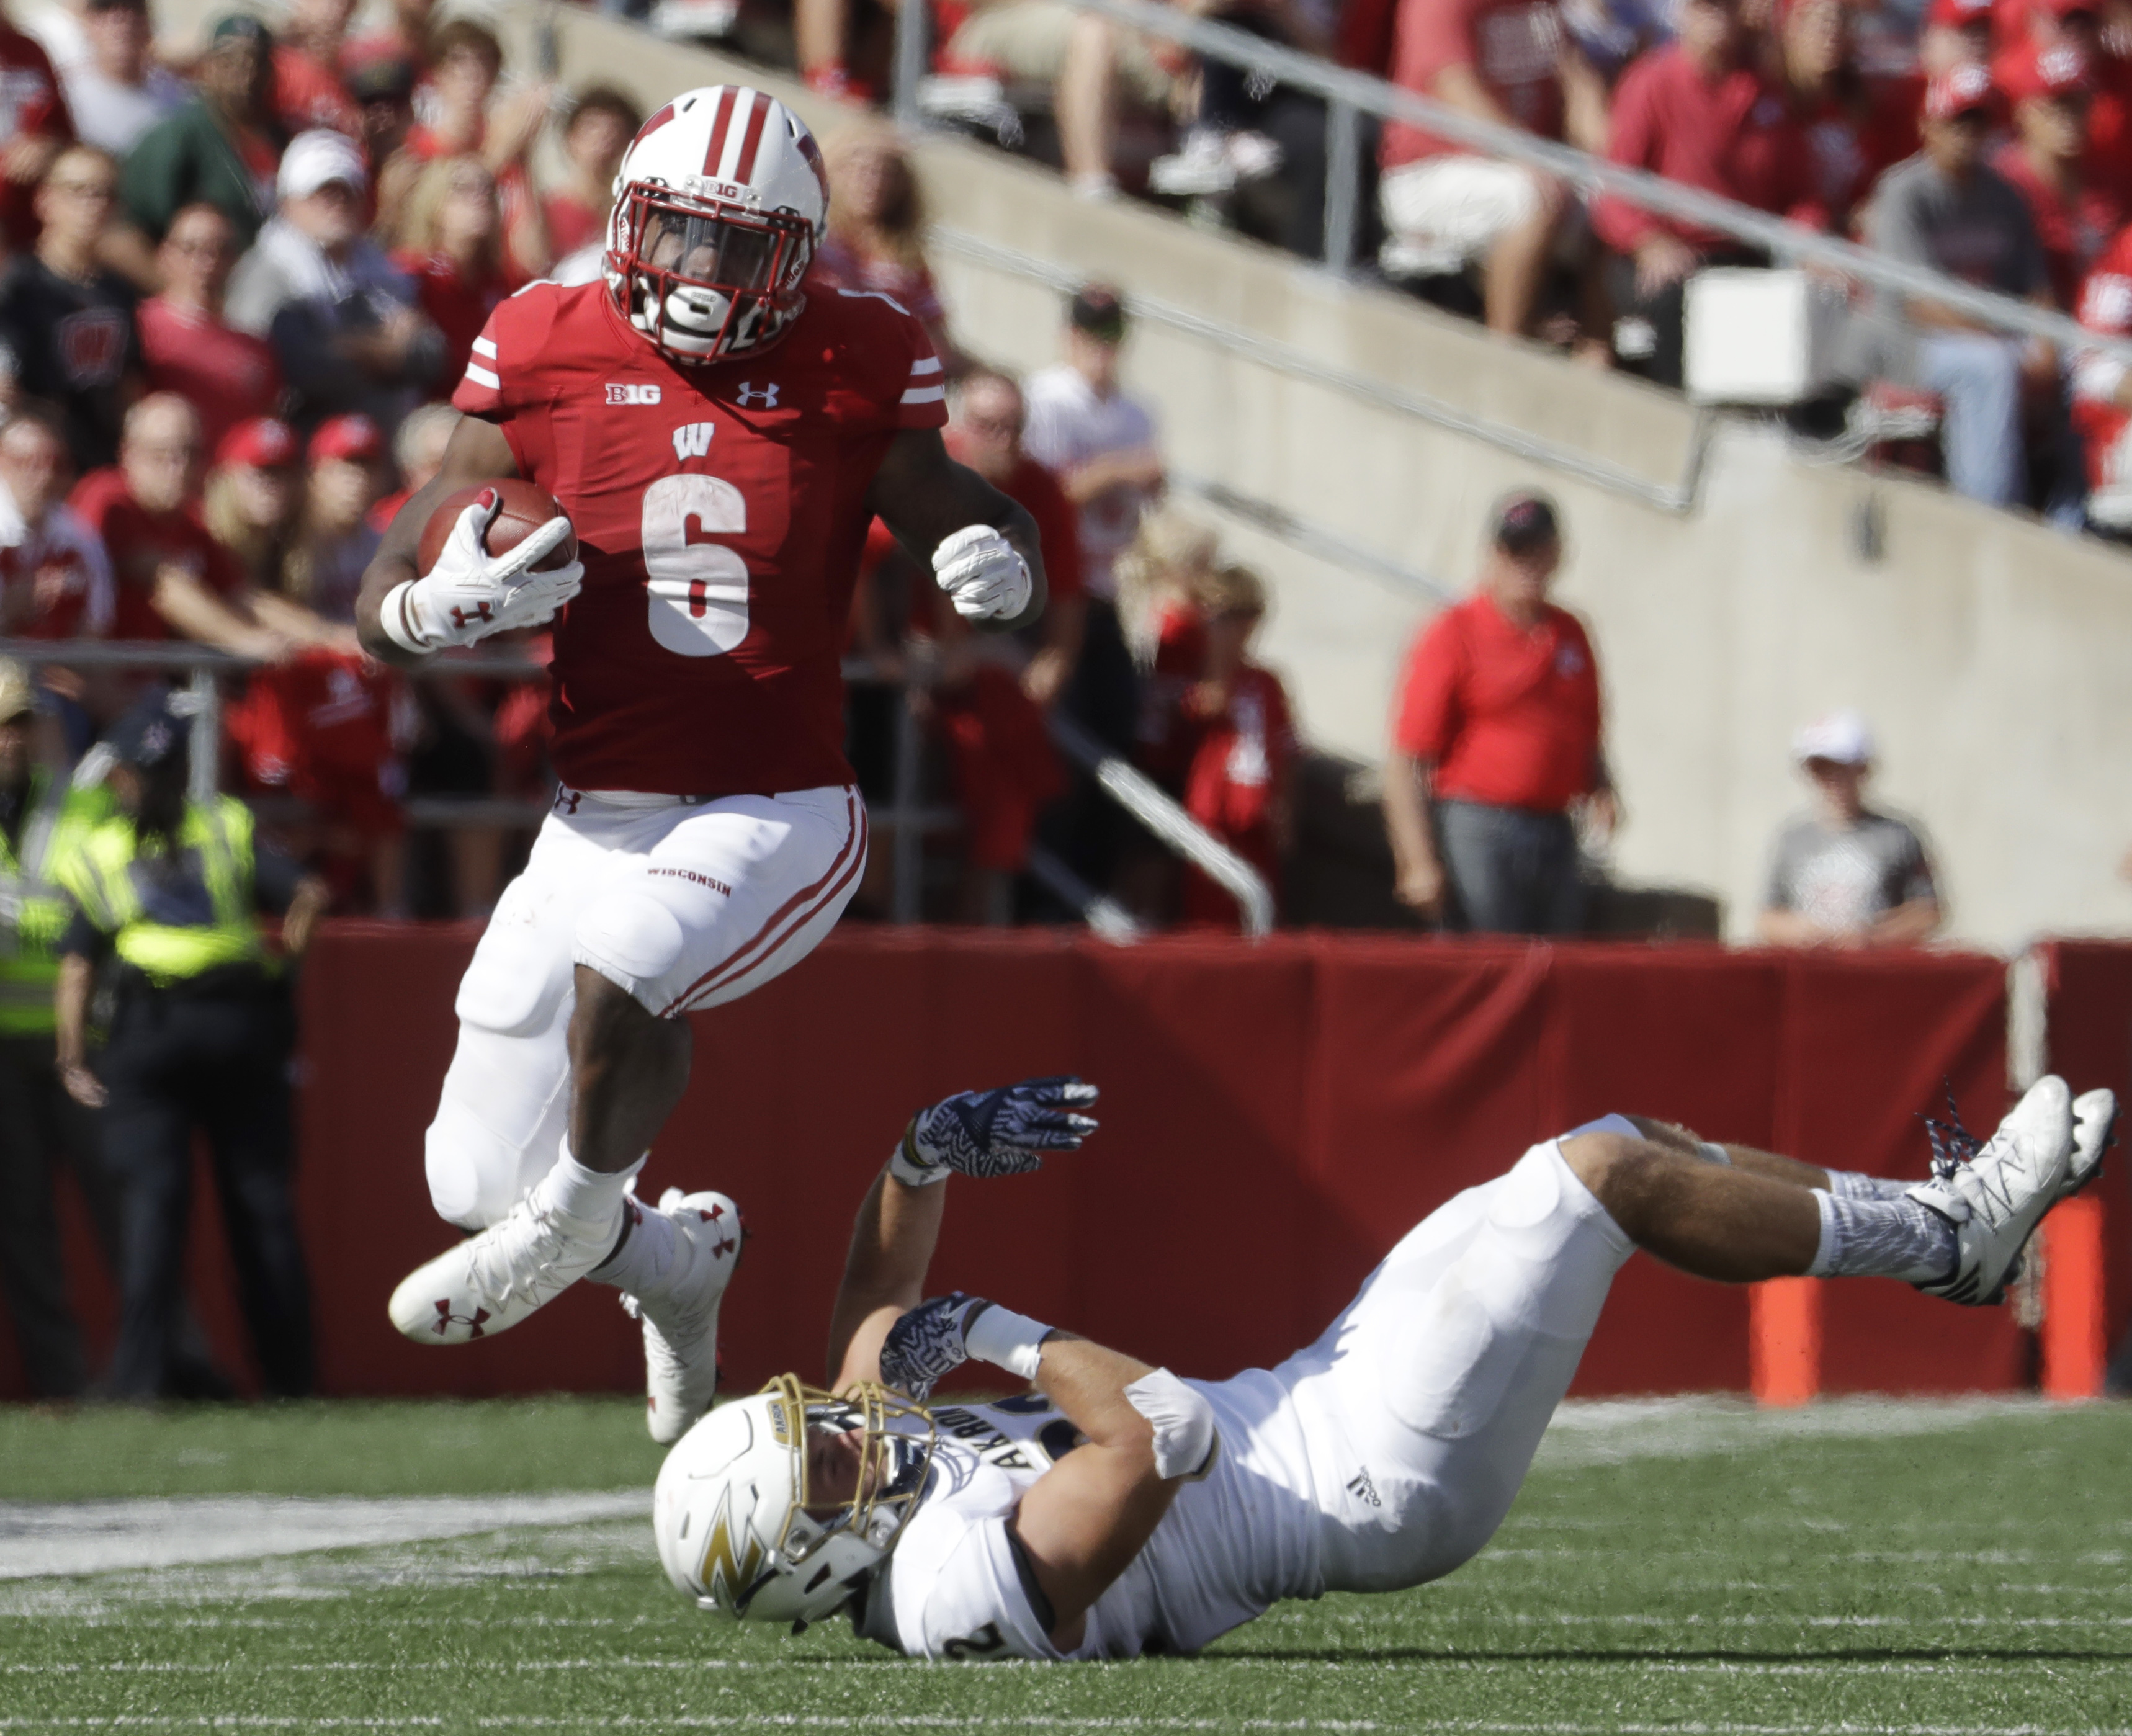 FILE - In this Sept. 10, 2016, file photo, Wisconsin's Corey Clement runs past Akron's Zach Guiser during the first half of an NCAA college football game, in Madison, Wis. The senior came up big in the eighth-ranked Badgers biggest game of the season, but